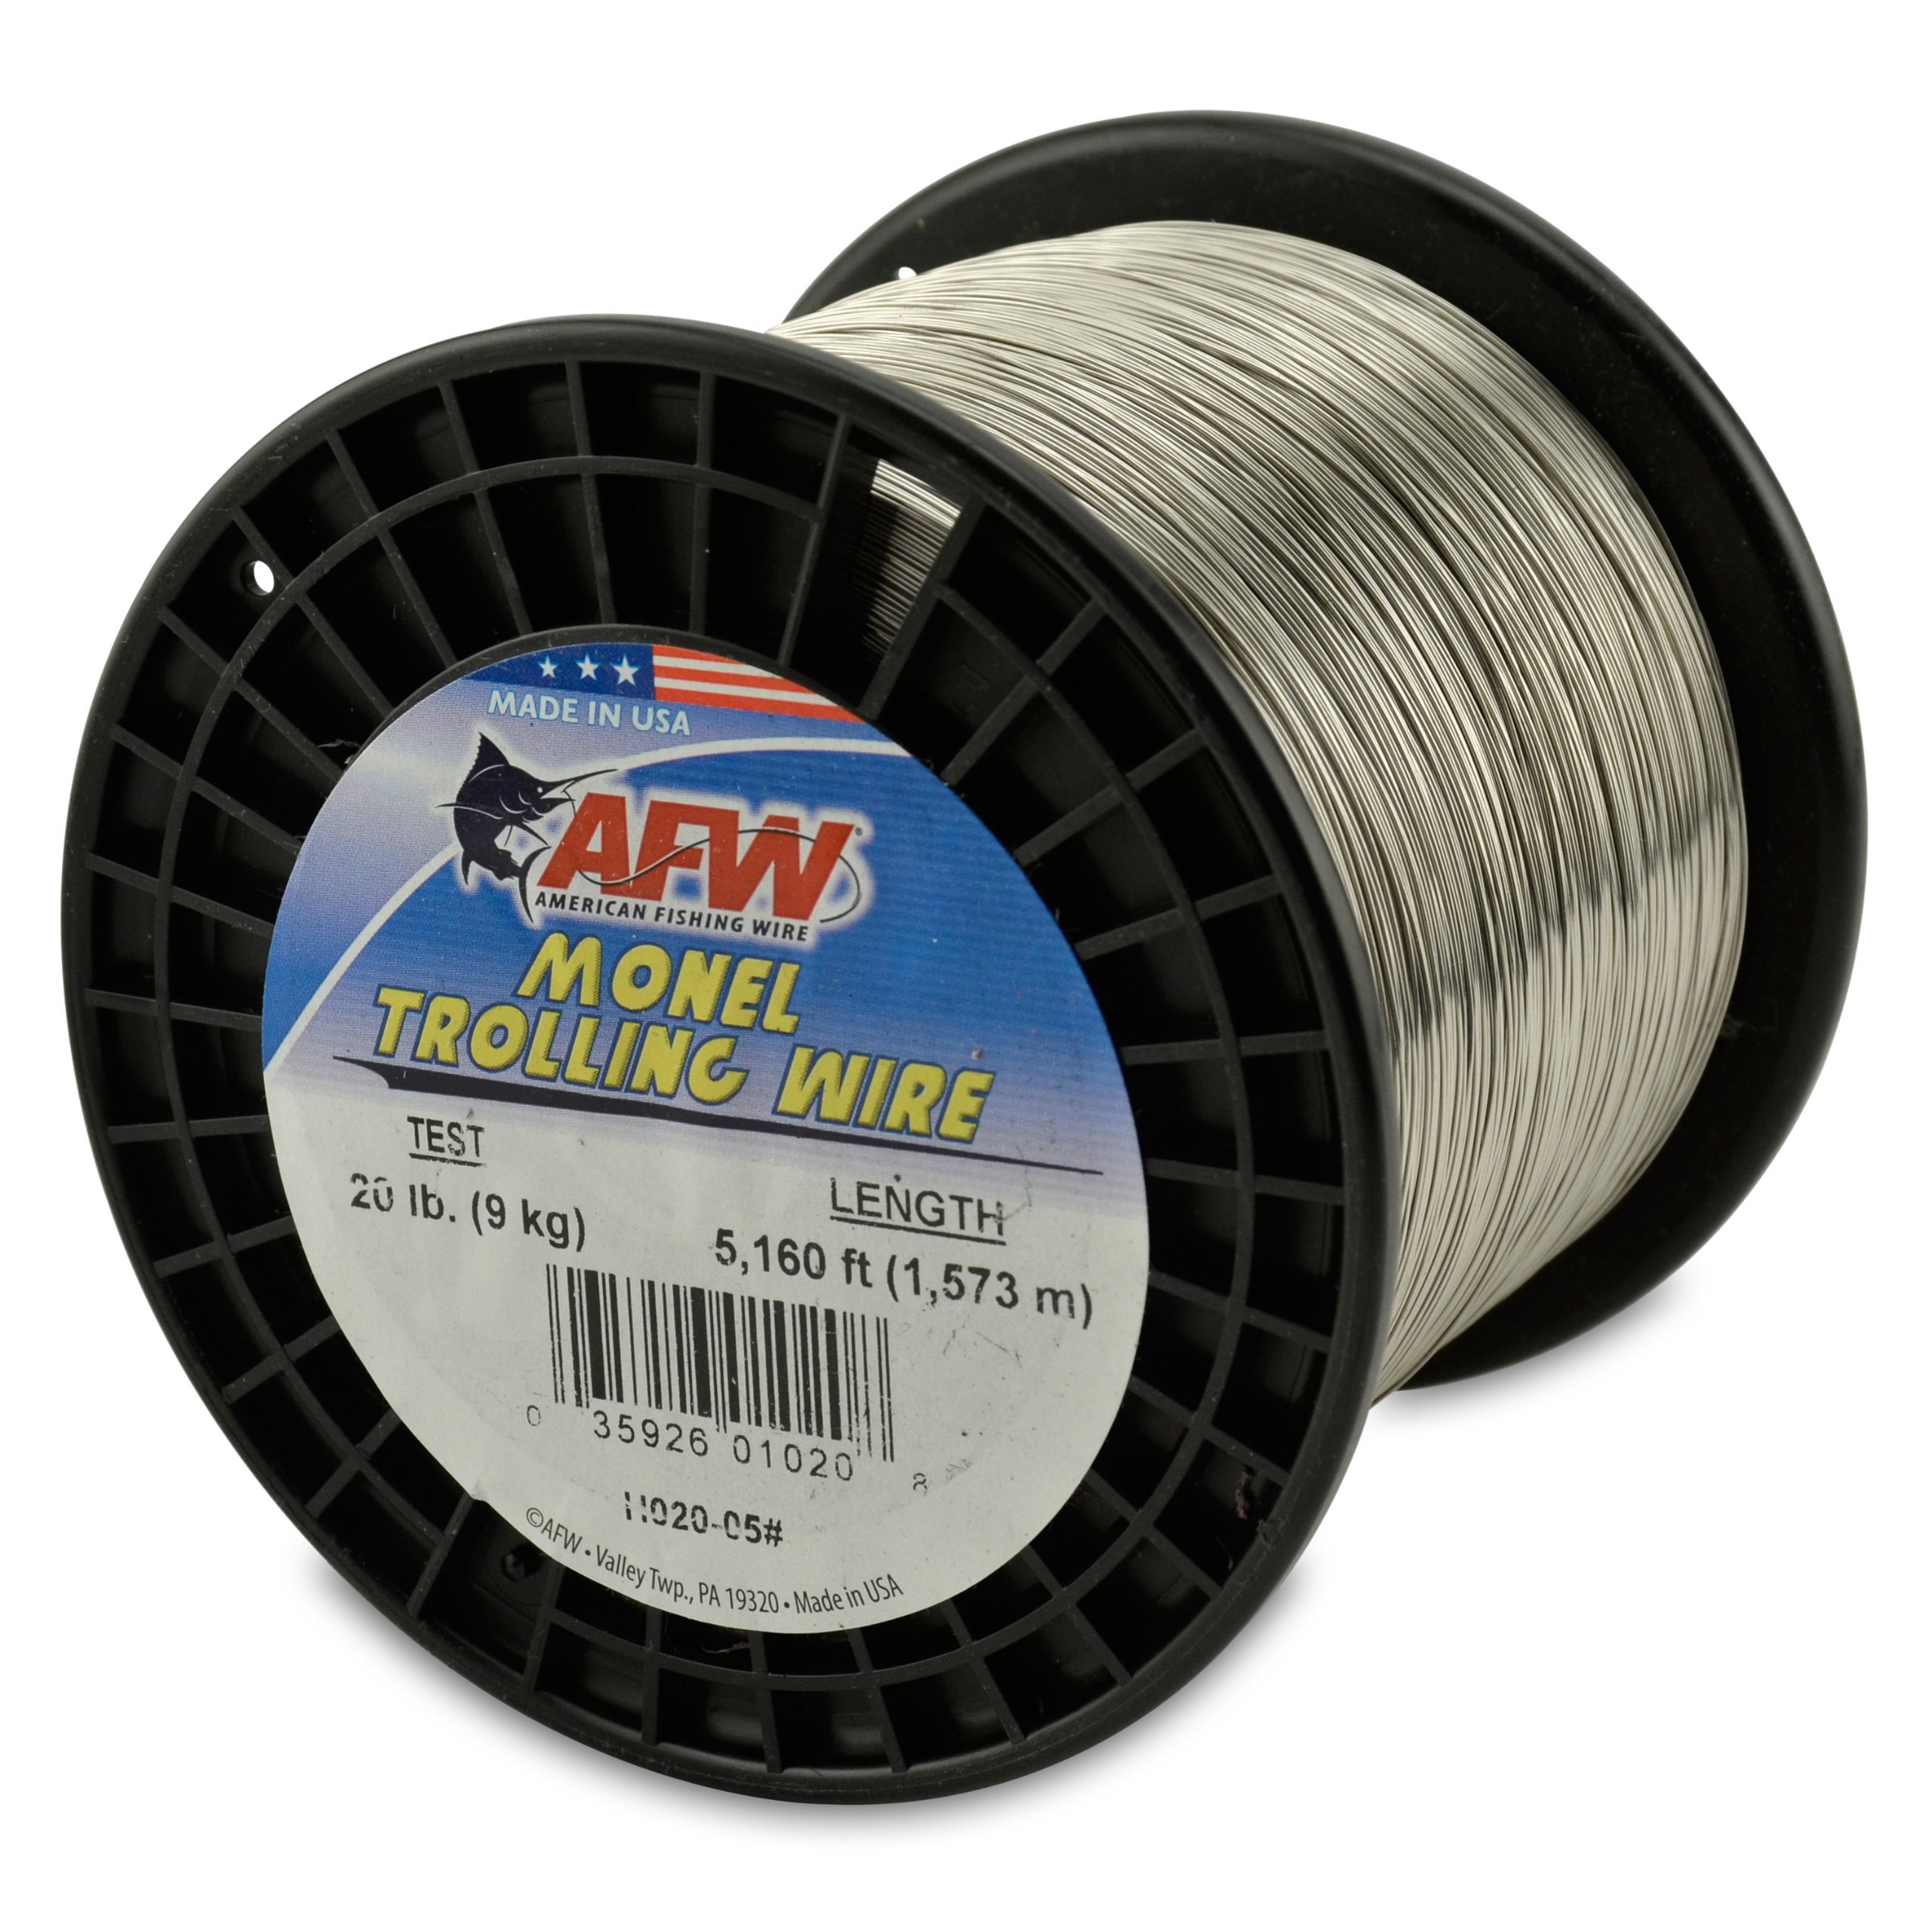 American Fishing Wire Monel Trolling Wire, 20-Pound Test/0.46mm Dia/1572m